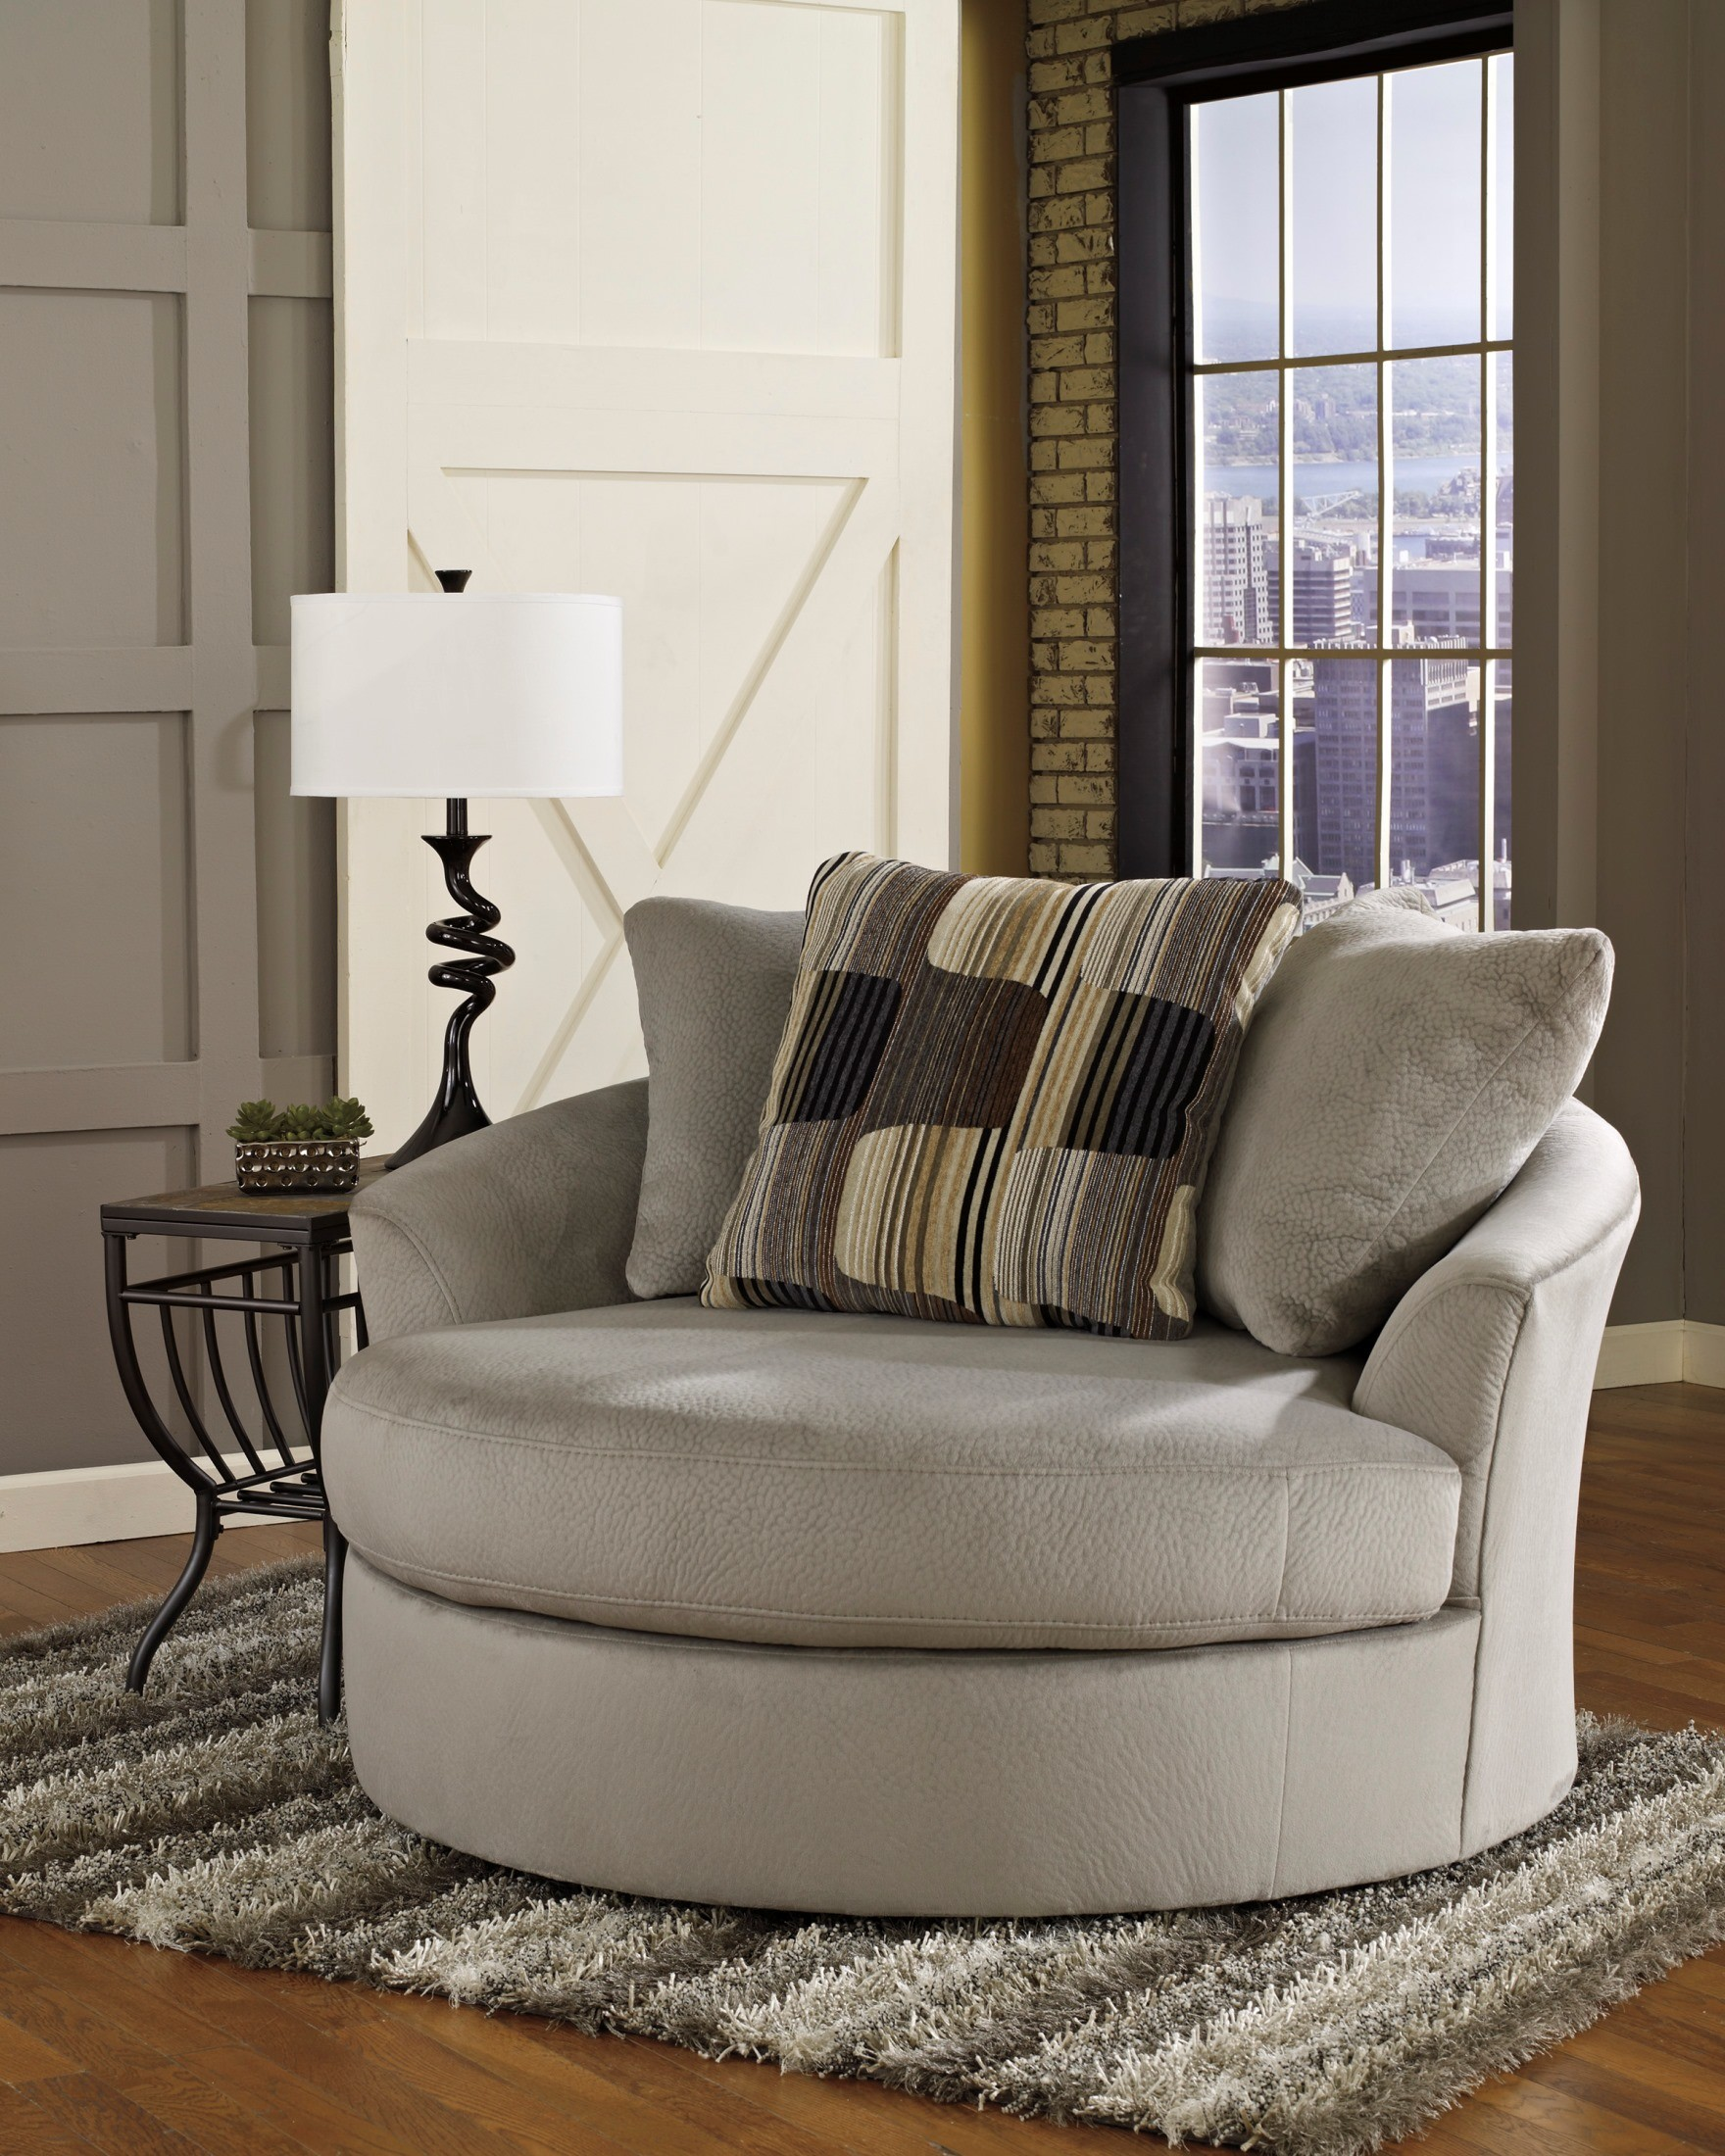 Westen Granite Oversized Swivel Accent Chair, 1950121